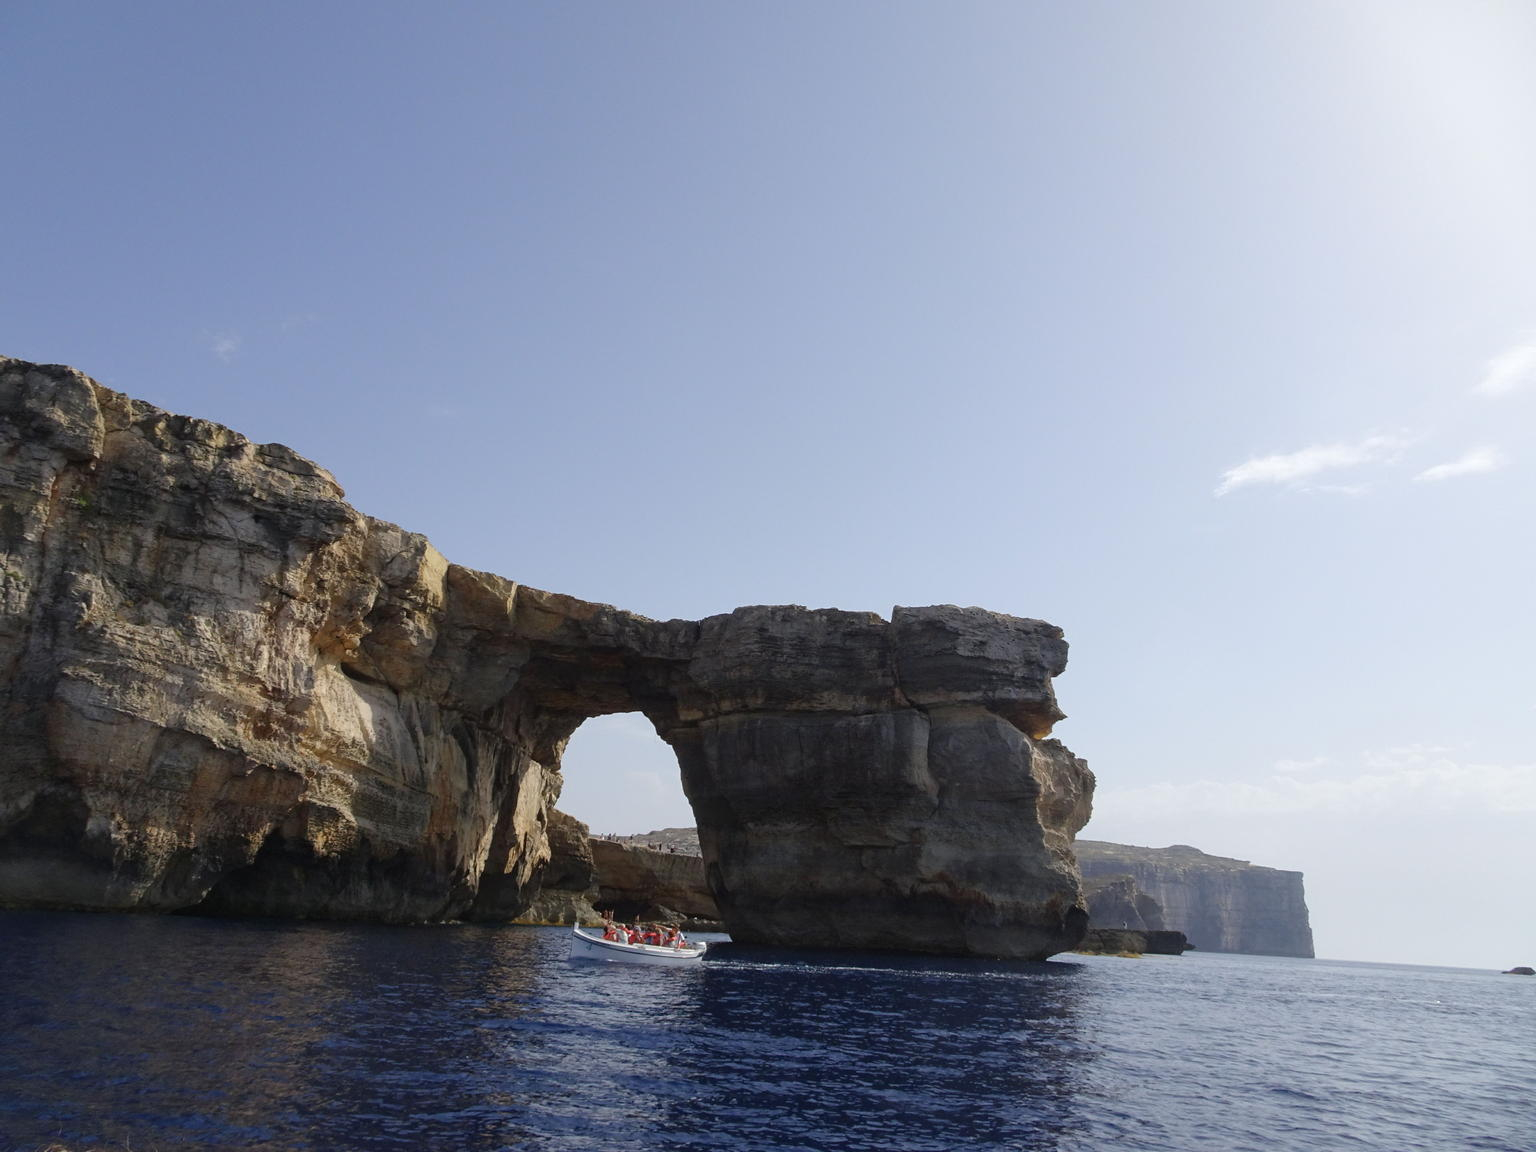 MÁS FOTOS, Gozo Full-Day Jeep Tour w/ Private Boat to Gozo & return (to avoid queuing)